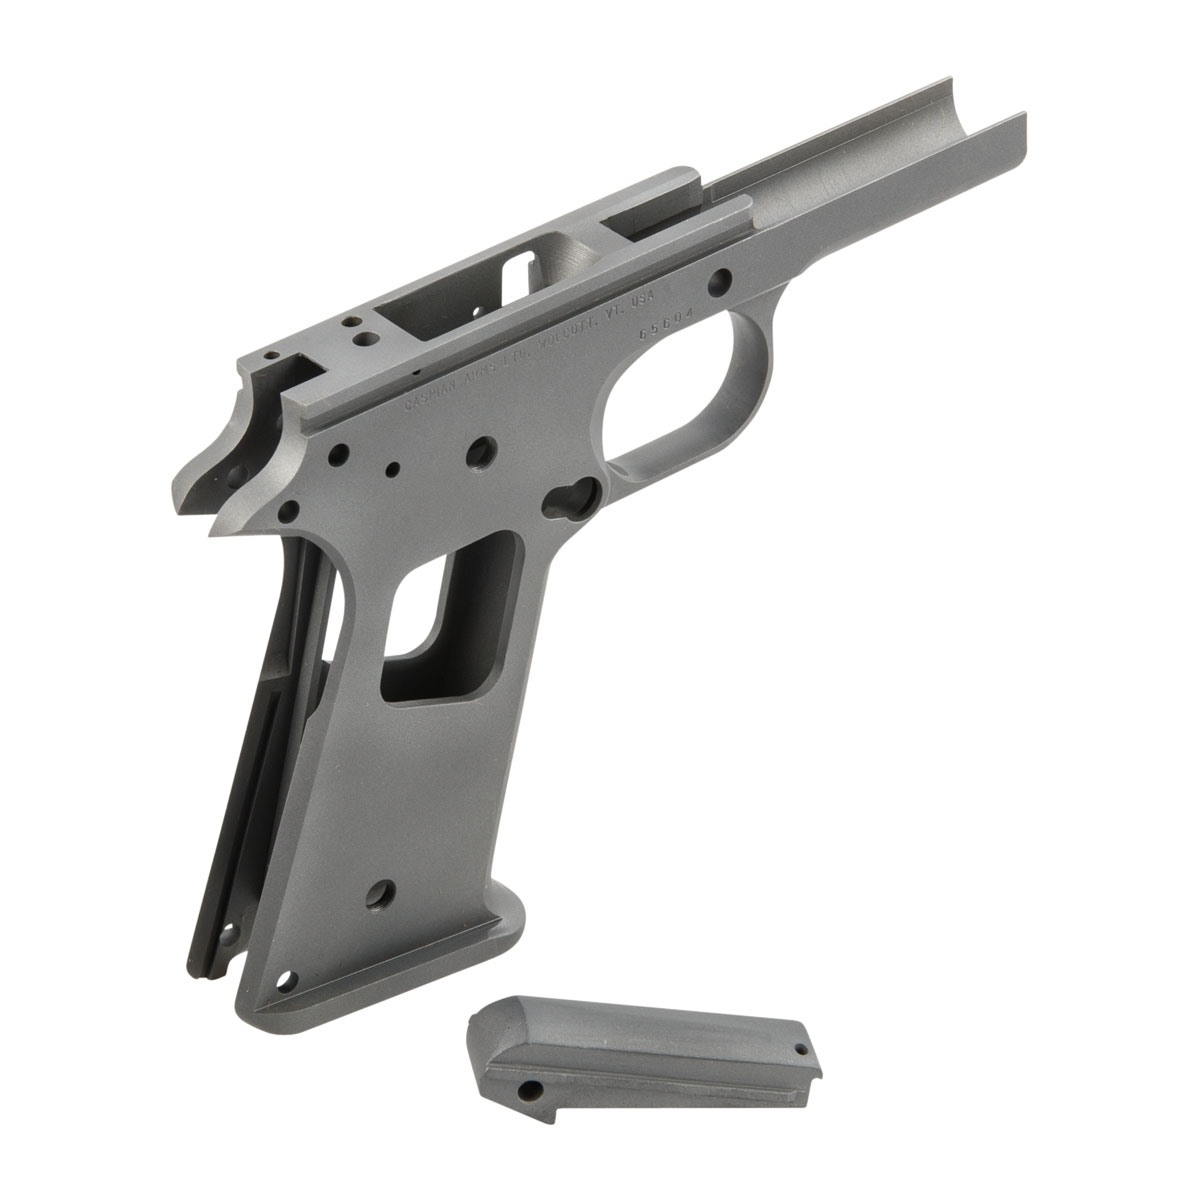 CASPIAN 1911 RACE READY RECEIVER CARBON, SMOOTH | Brownells